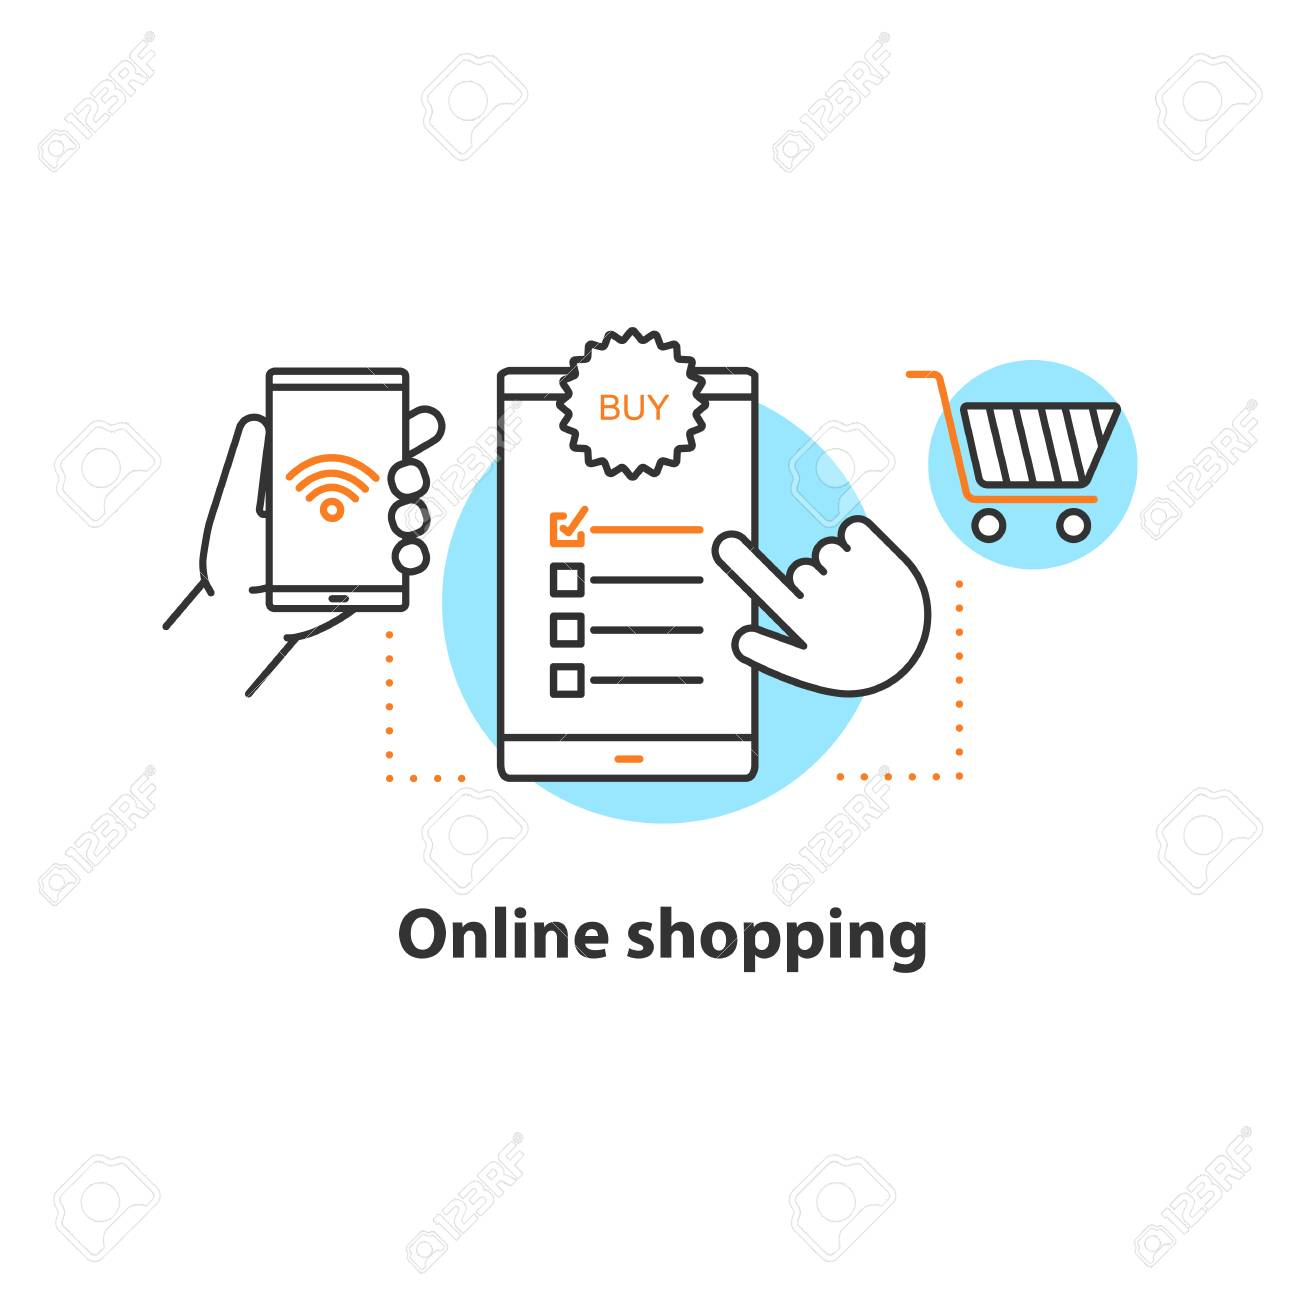 Online shopping concept icon. Digital purchase idea thin line illustration. Select items. Vector isolated outline drawing - 104486812